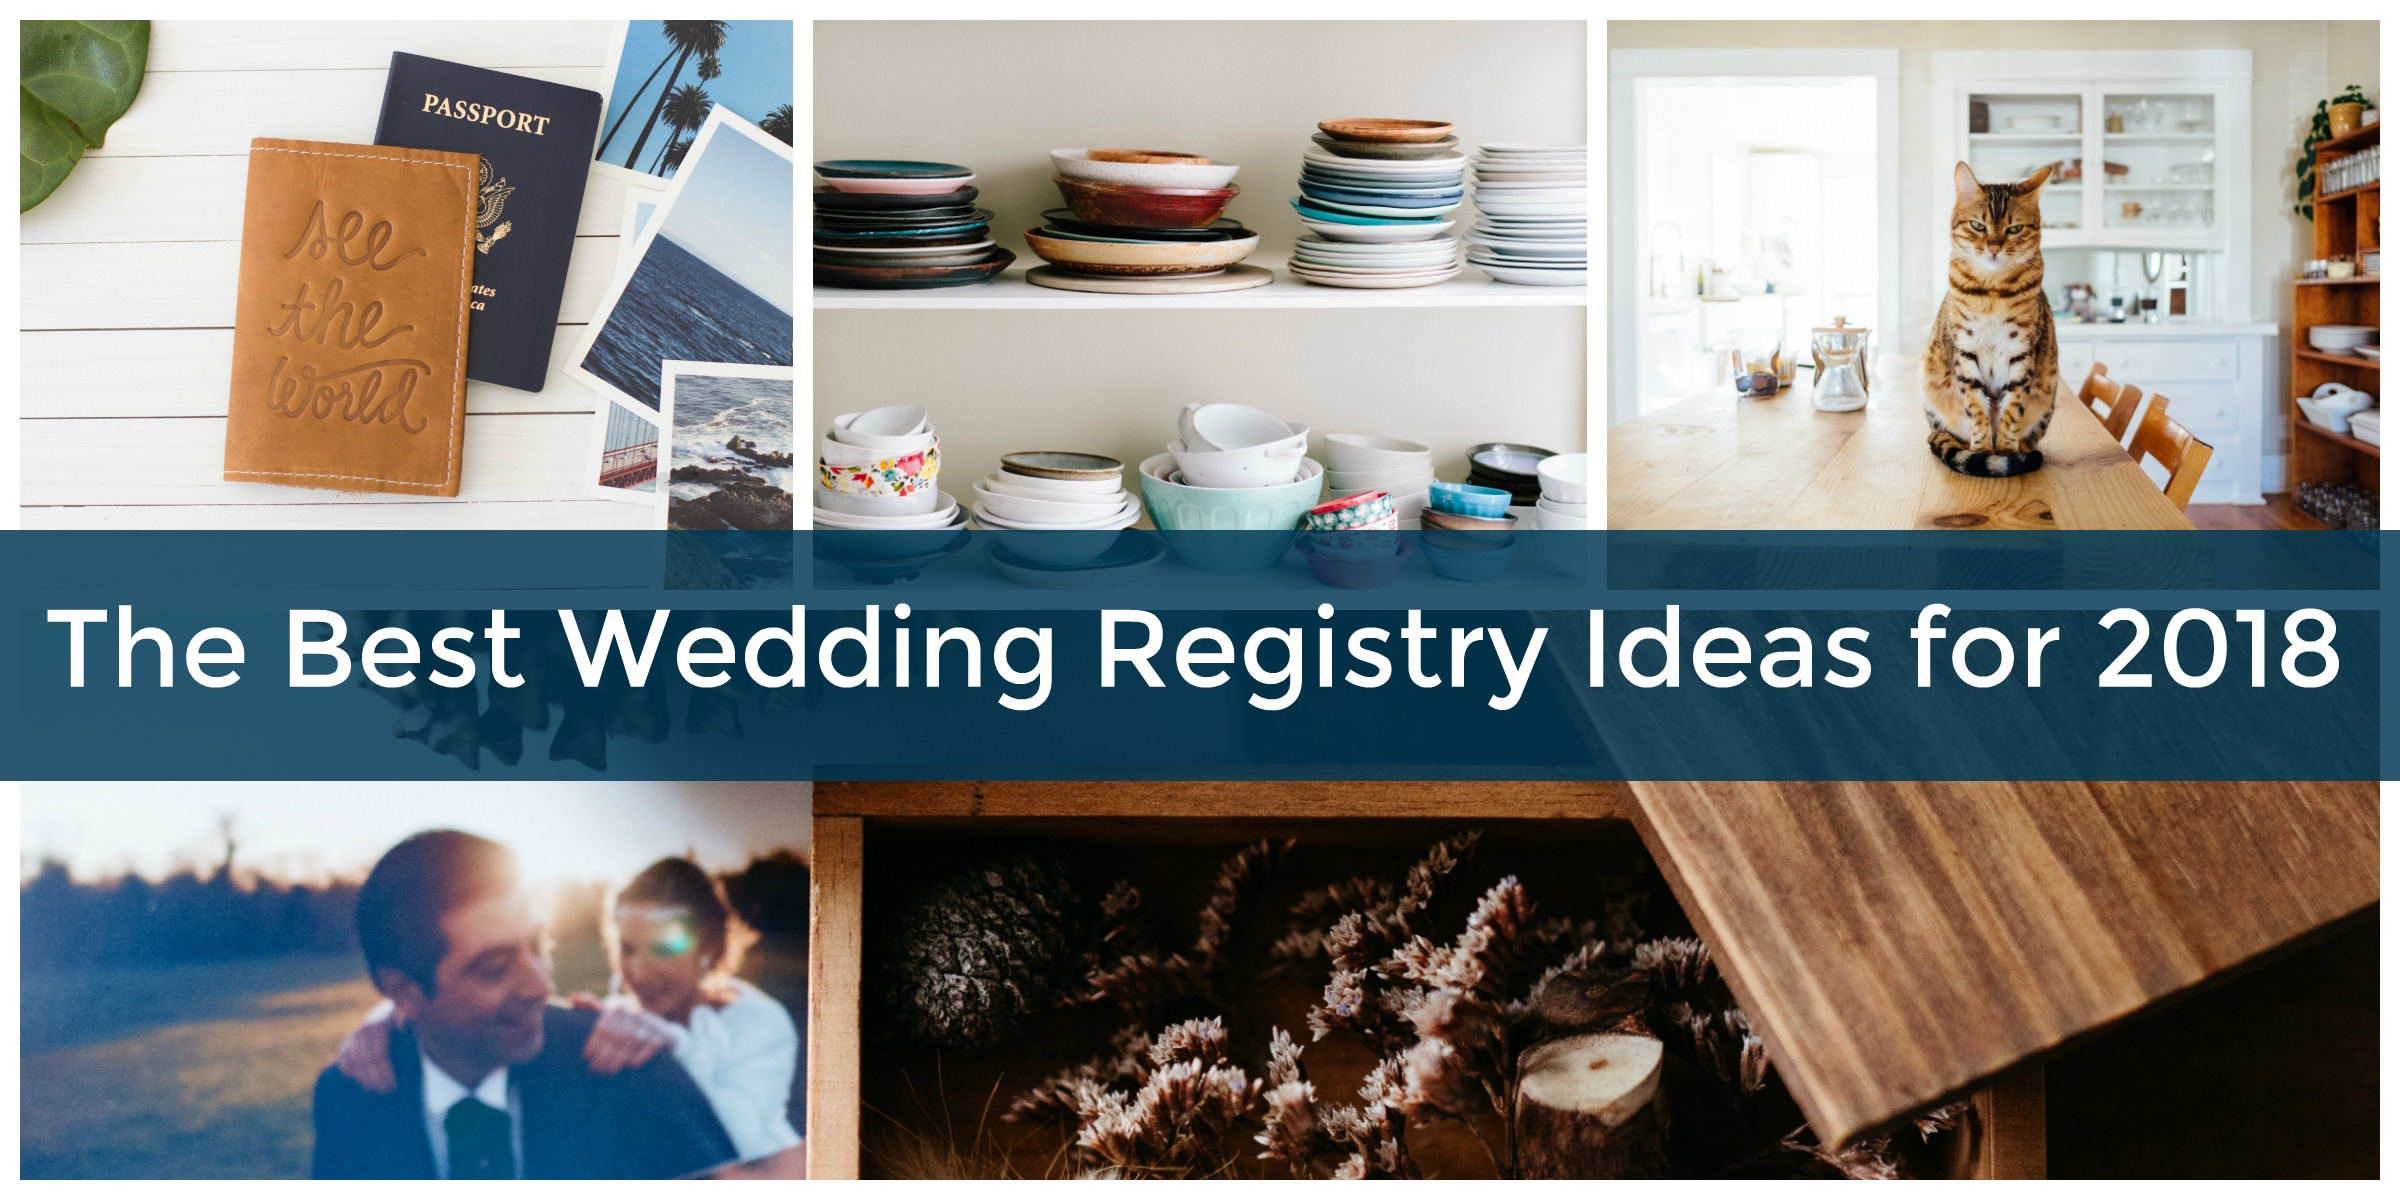 The best wedding registry sites 2017 2018 elfster blog august 30 2017 justina h 2018 wedding registry site ideas junglespirit Choice Image